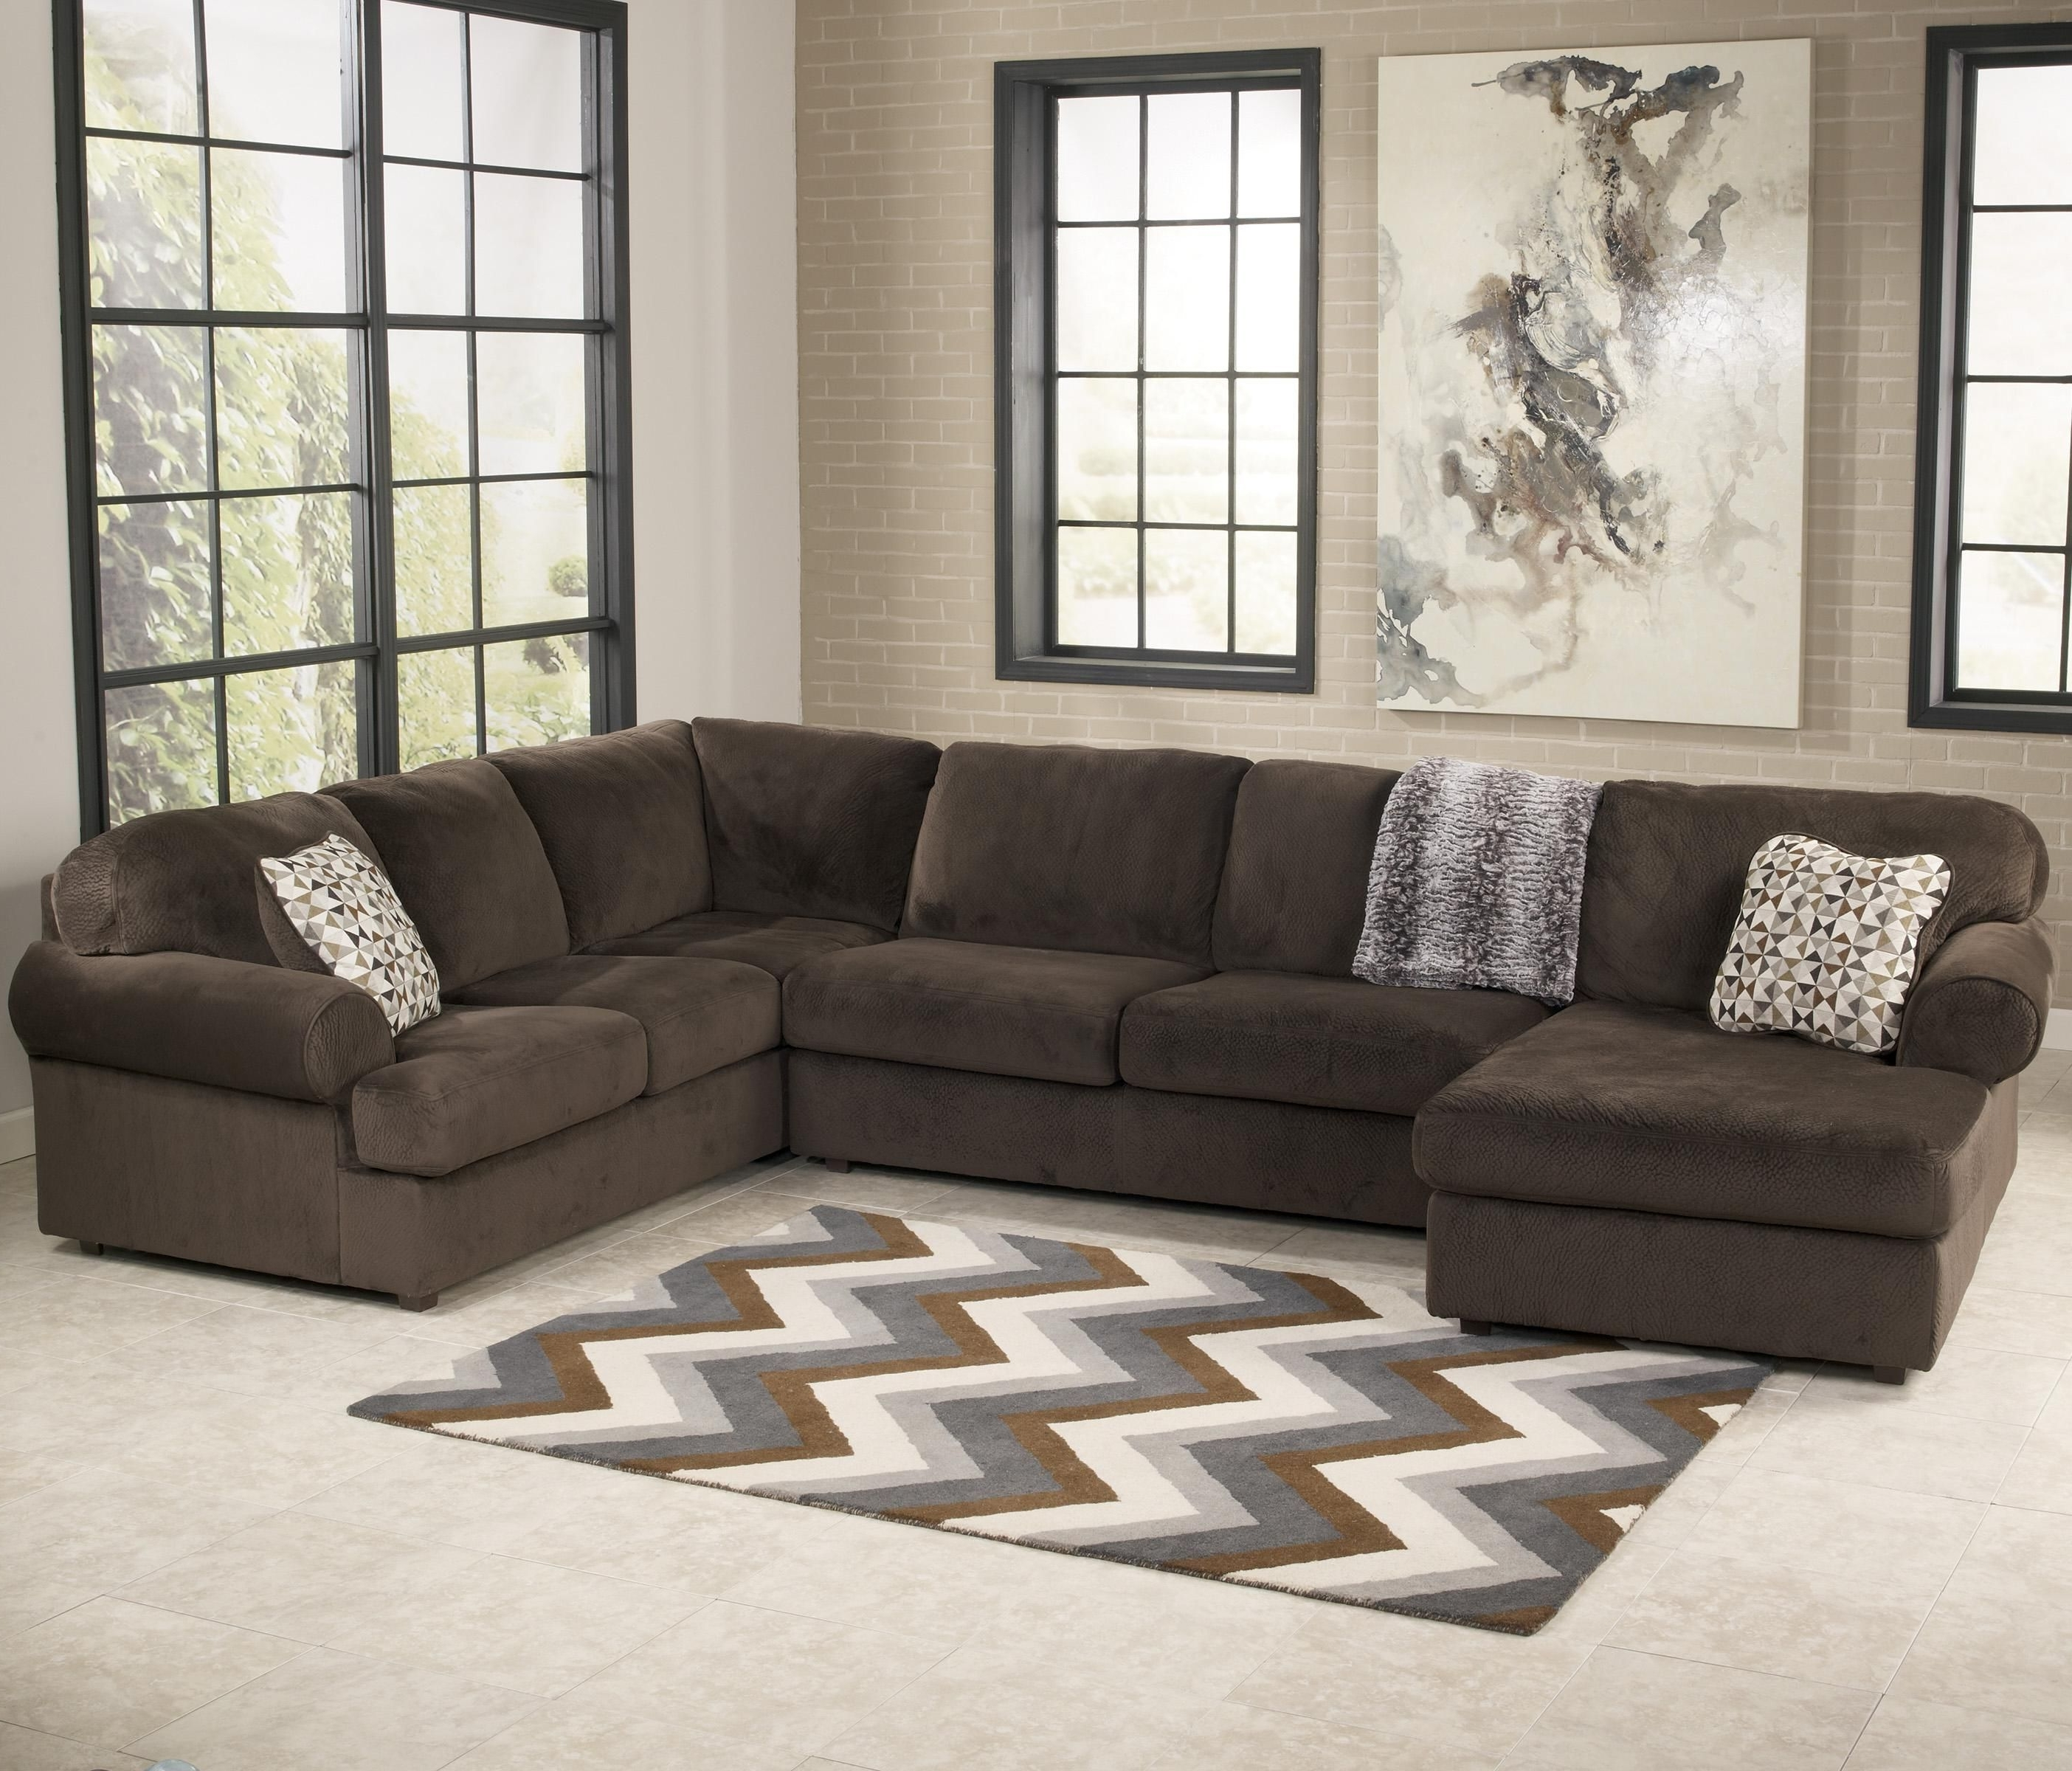 Jessa Place – Chocolate Casual Sectional Sofa With Left Chaise In Most Recently Released Jackson Ms Sectional Sofas (View 7 of 20)